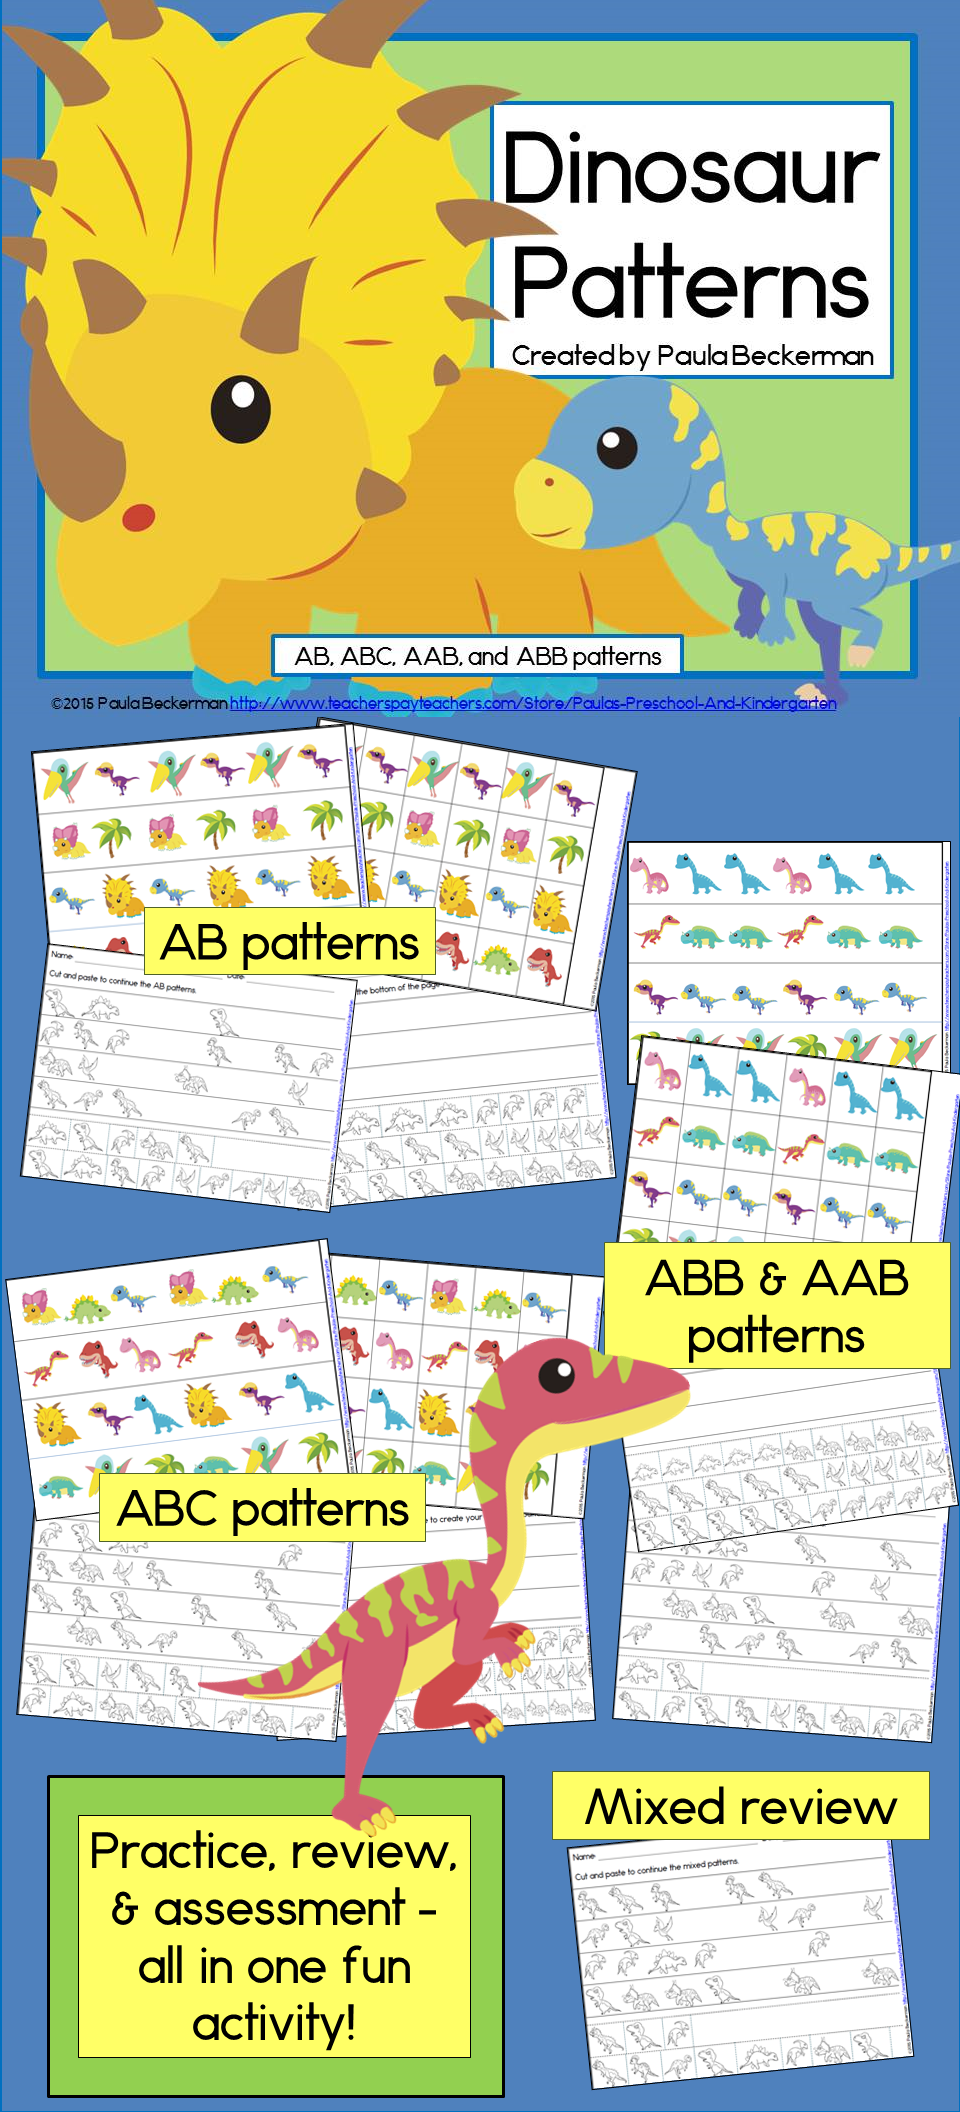 dinosaur patterns math center with ab abc aab abb patterns dinosaurs dinosaur pattern. Black Bedroom Furniture Sets. Home Design Ideas